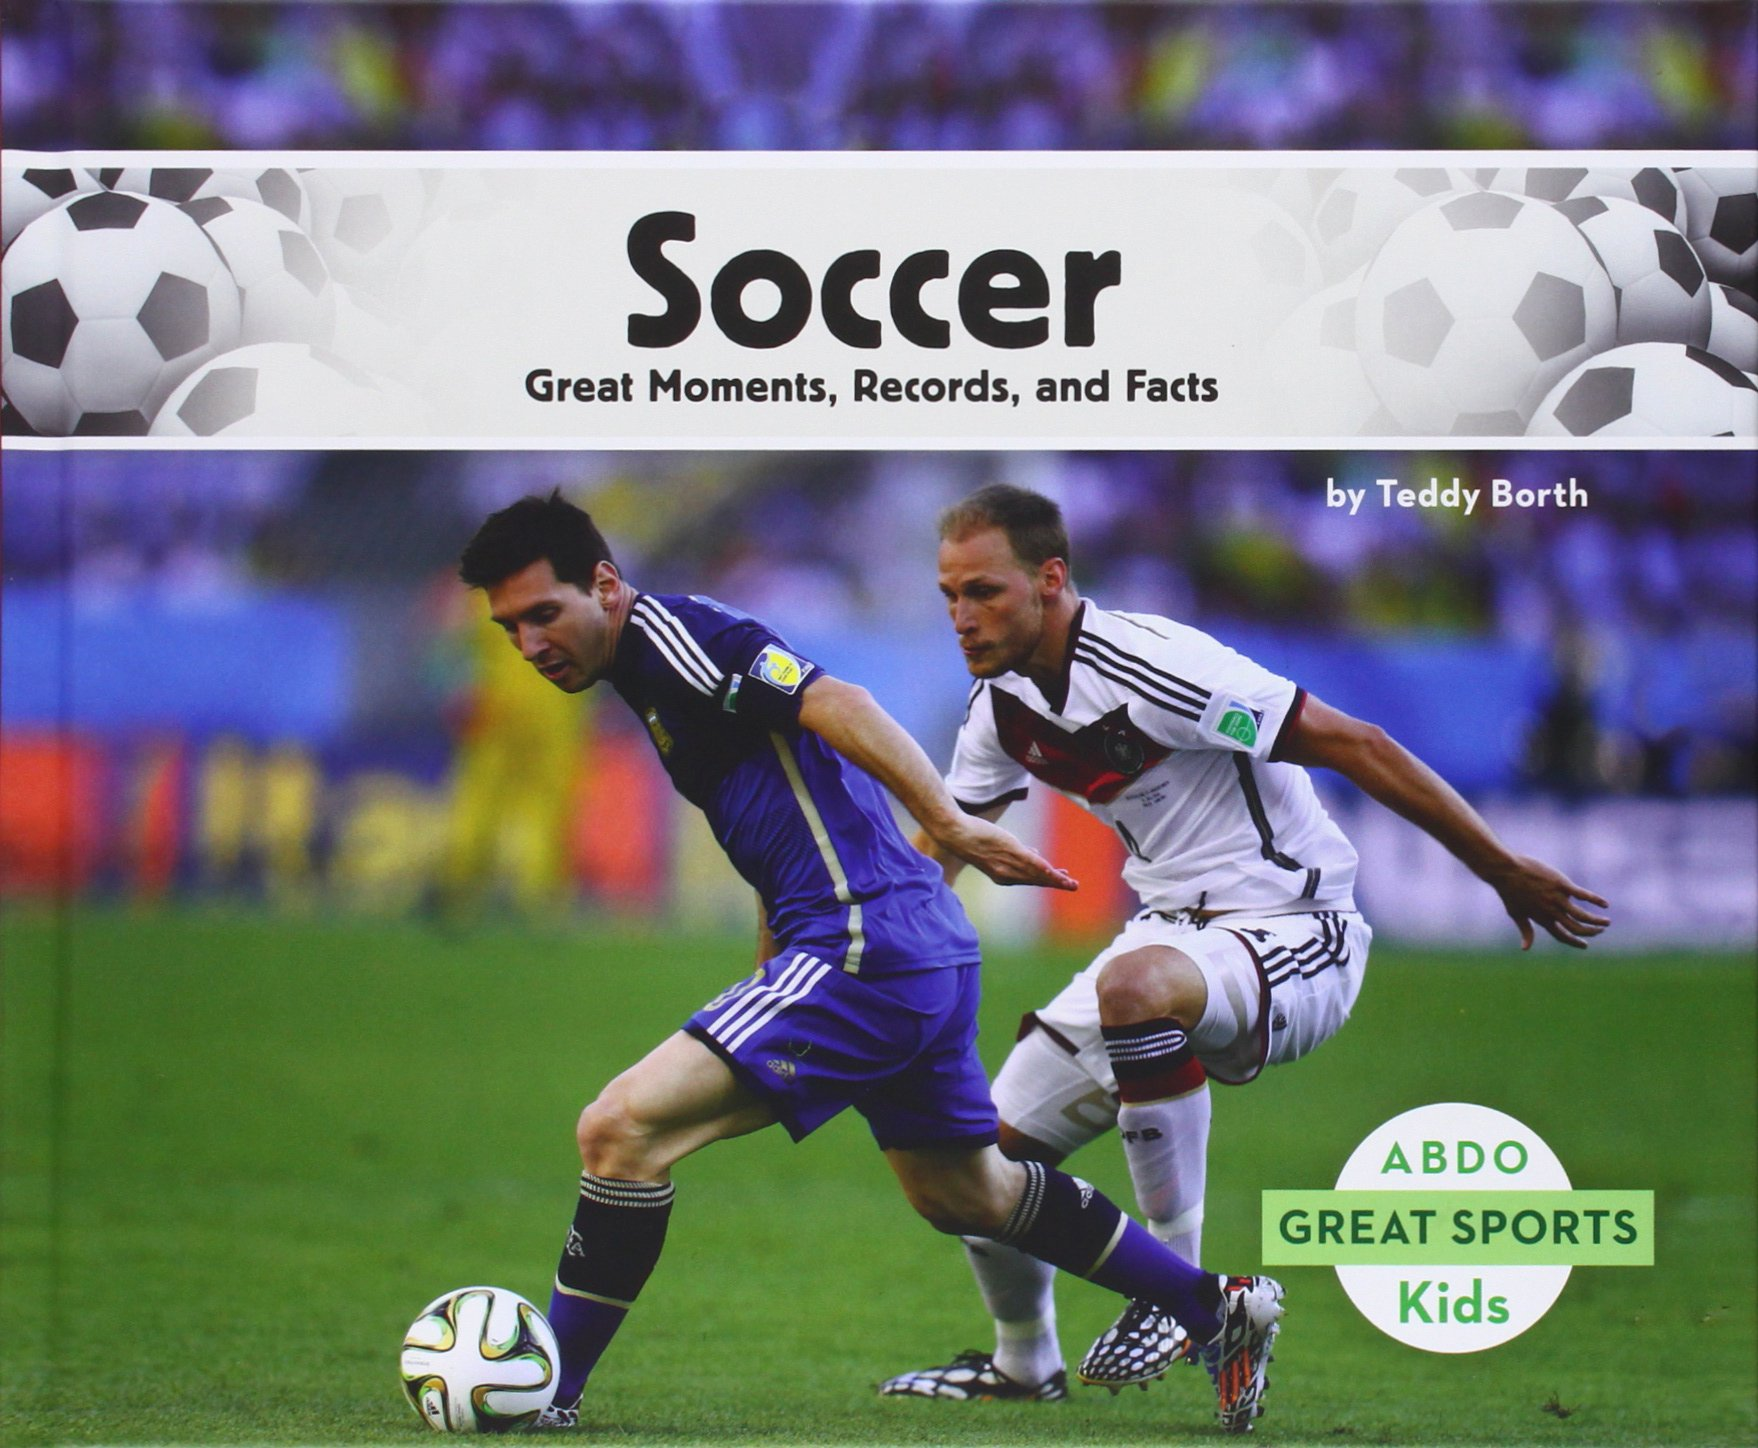 Soccer: Great Moments, Records, and Facts (Great Sports)